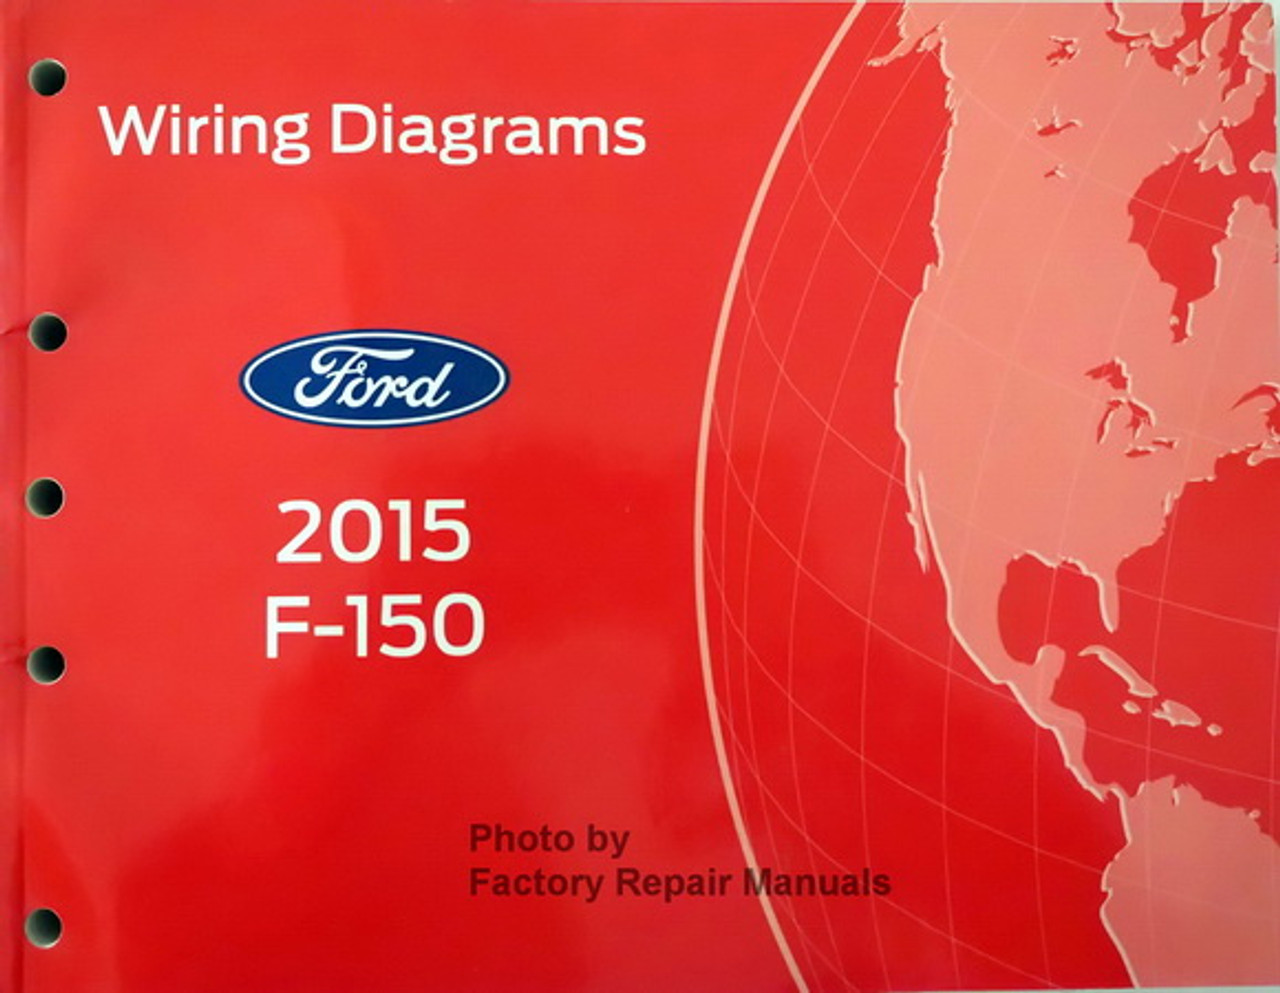 2015 Ford F150 Backup Camera Wiring Diagram from cdn11.bigcommerce.com